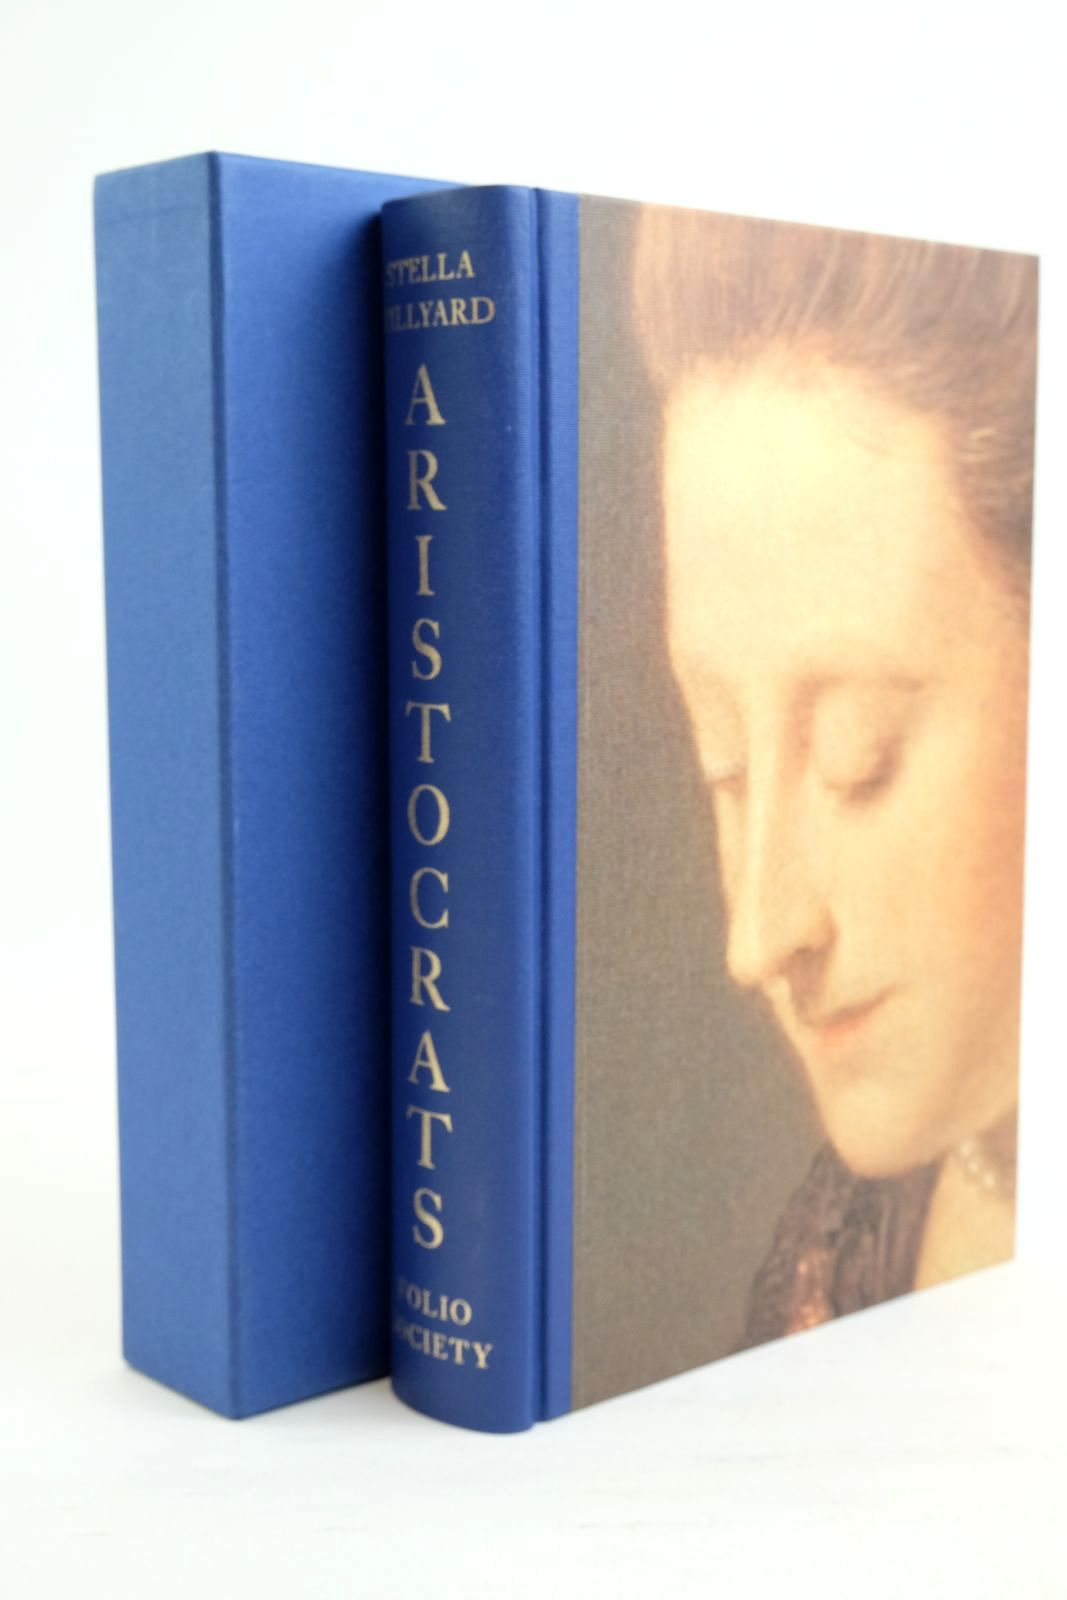 Photo of ARISTOCRATS written by Tillyard, Stella published by Folio Society (STOCK CODE: 1320850)  for sale by Stella & Rose's Books